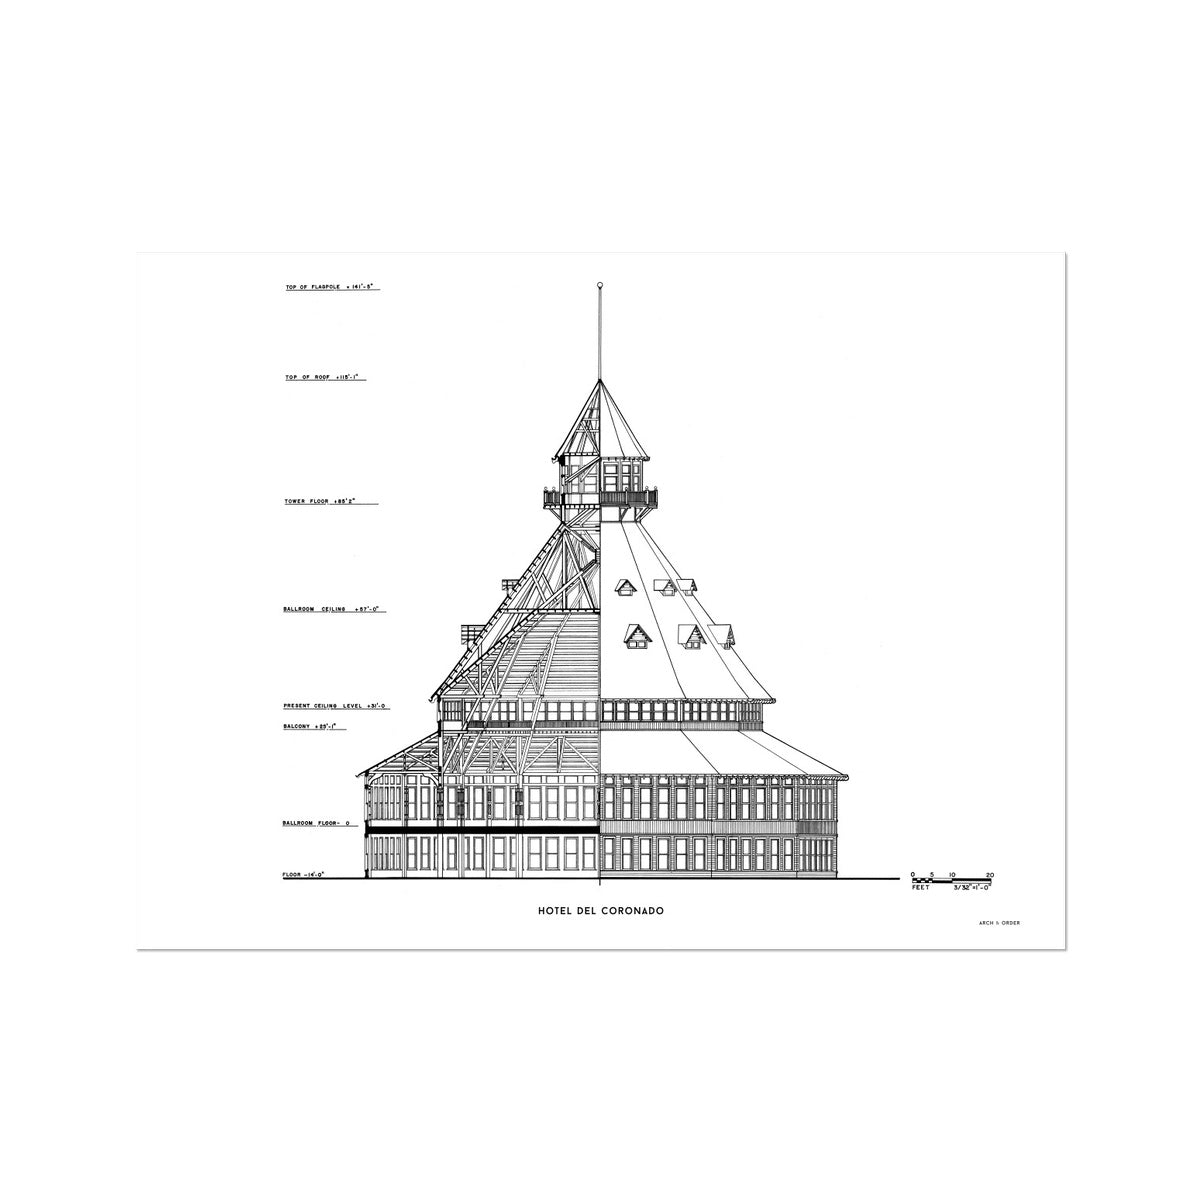 Hotel Del Coronado - Ballroom Cross Section - White -  Etching Paper Print